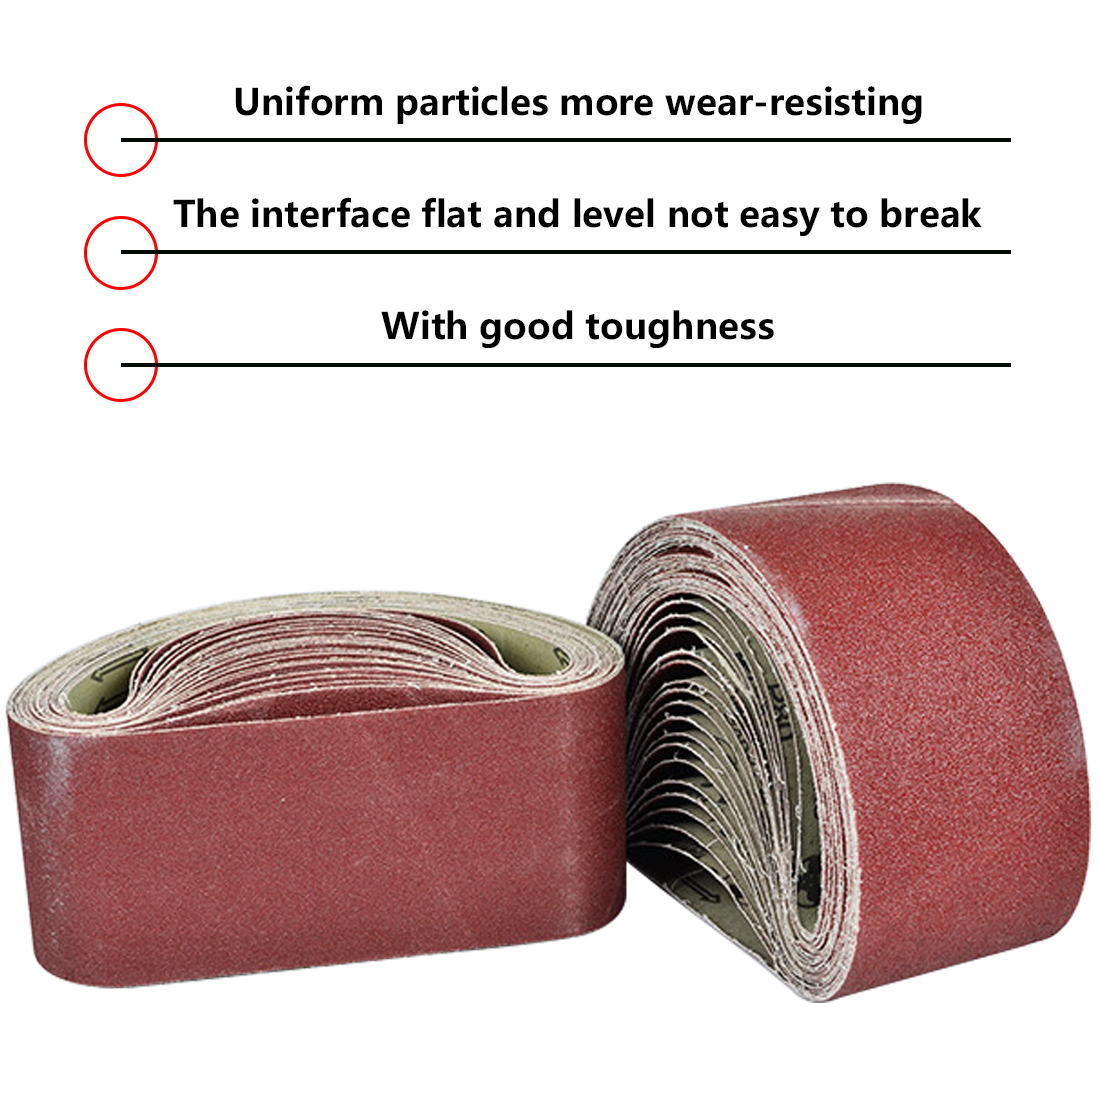 Abrasive Tools Audacious 533x75mm Sanding Belts 80-320 Grits Sandpaper Abrasive Bands For Sander Power Rotary Tools Dremel Accessories Abrasive Tool Non-Ironing